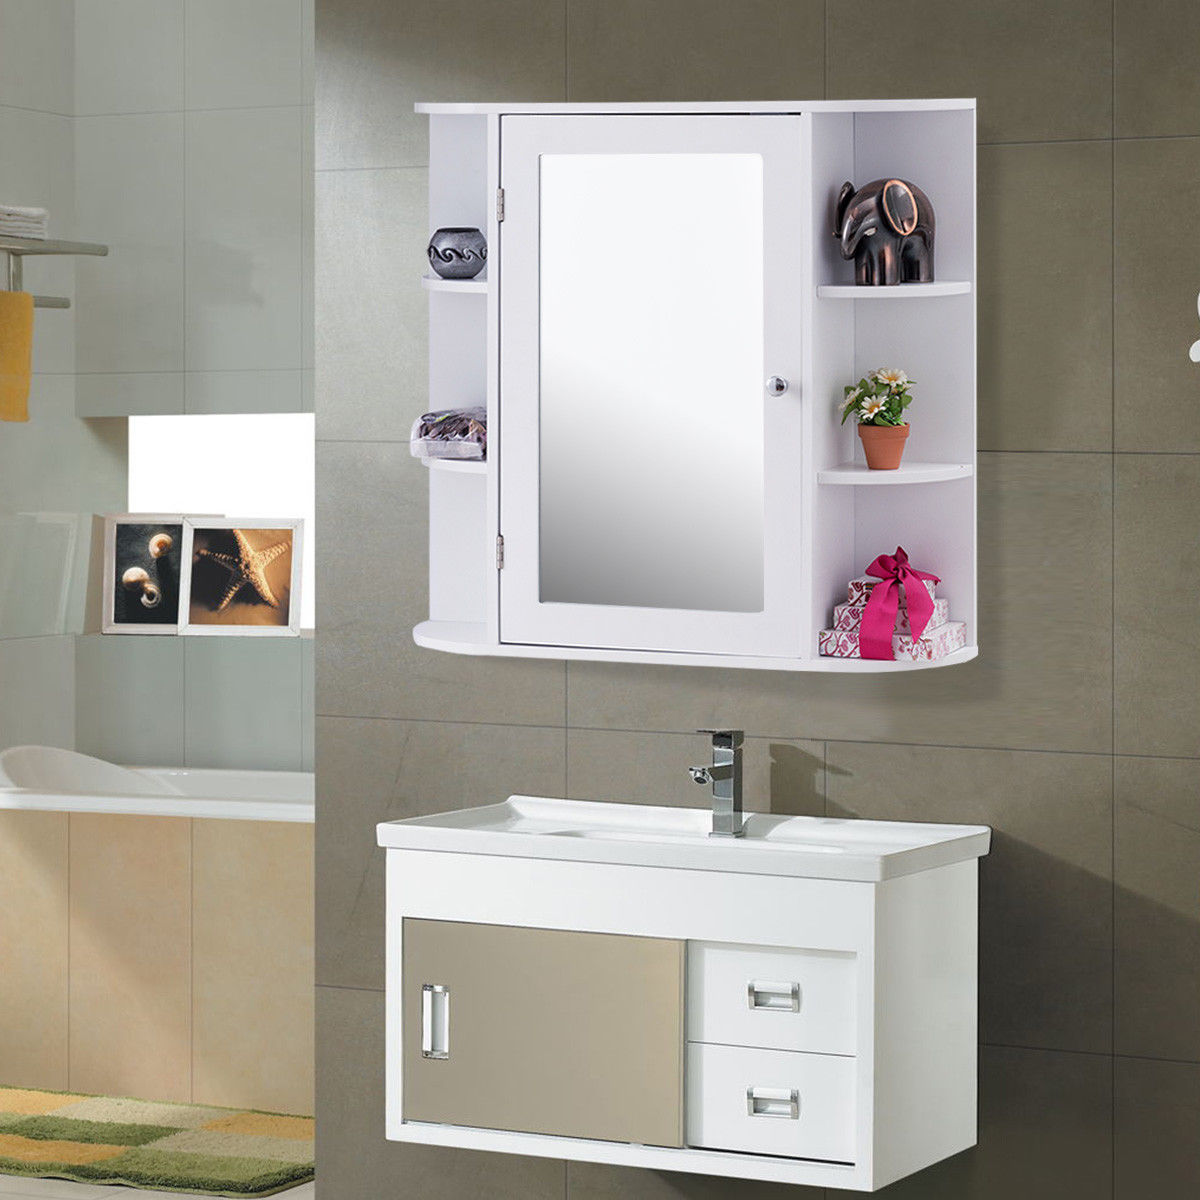 Tremendous Giantex Mount Wall Surface Bathroom Storage Cabinet Withmirror Wood Bathroom Furniture Bathroom Vanitiesfrom Home Giantex Mount Wall Surface Bathroom Storage Cabinet bathroom White Wood Bathroom Shelves